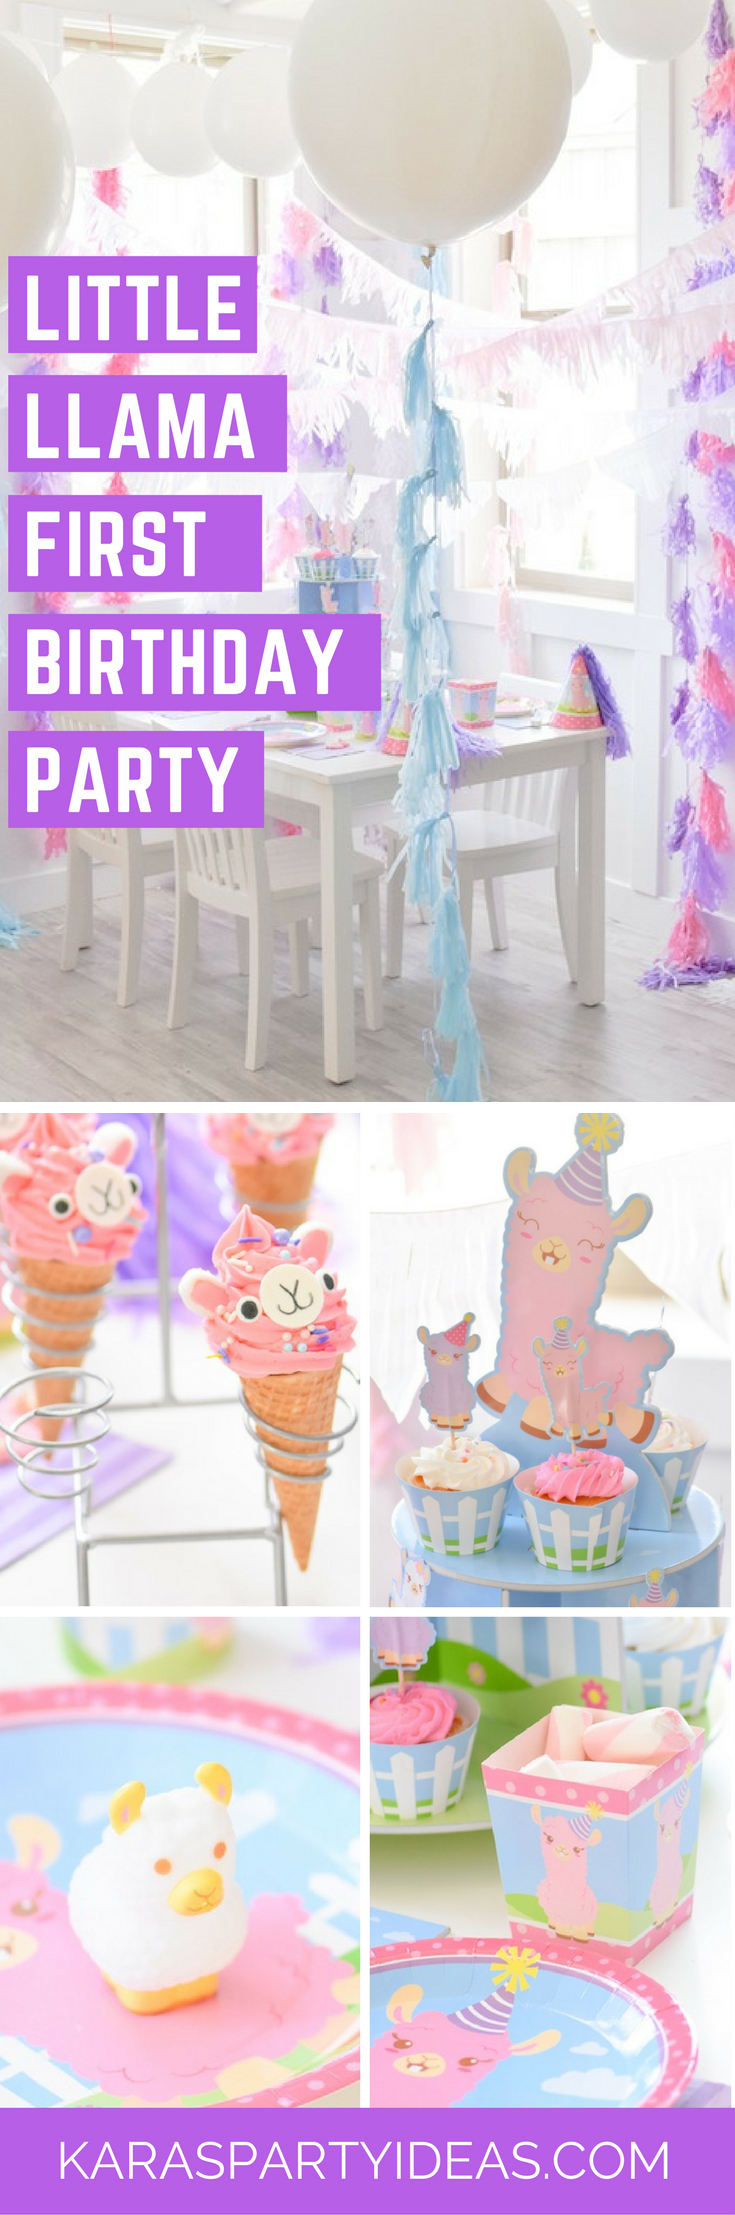 Little Llama First Birthday Party via Kara's Party Ideas - KarasPartyIdeas.com